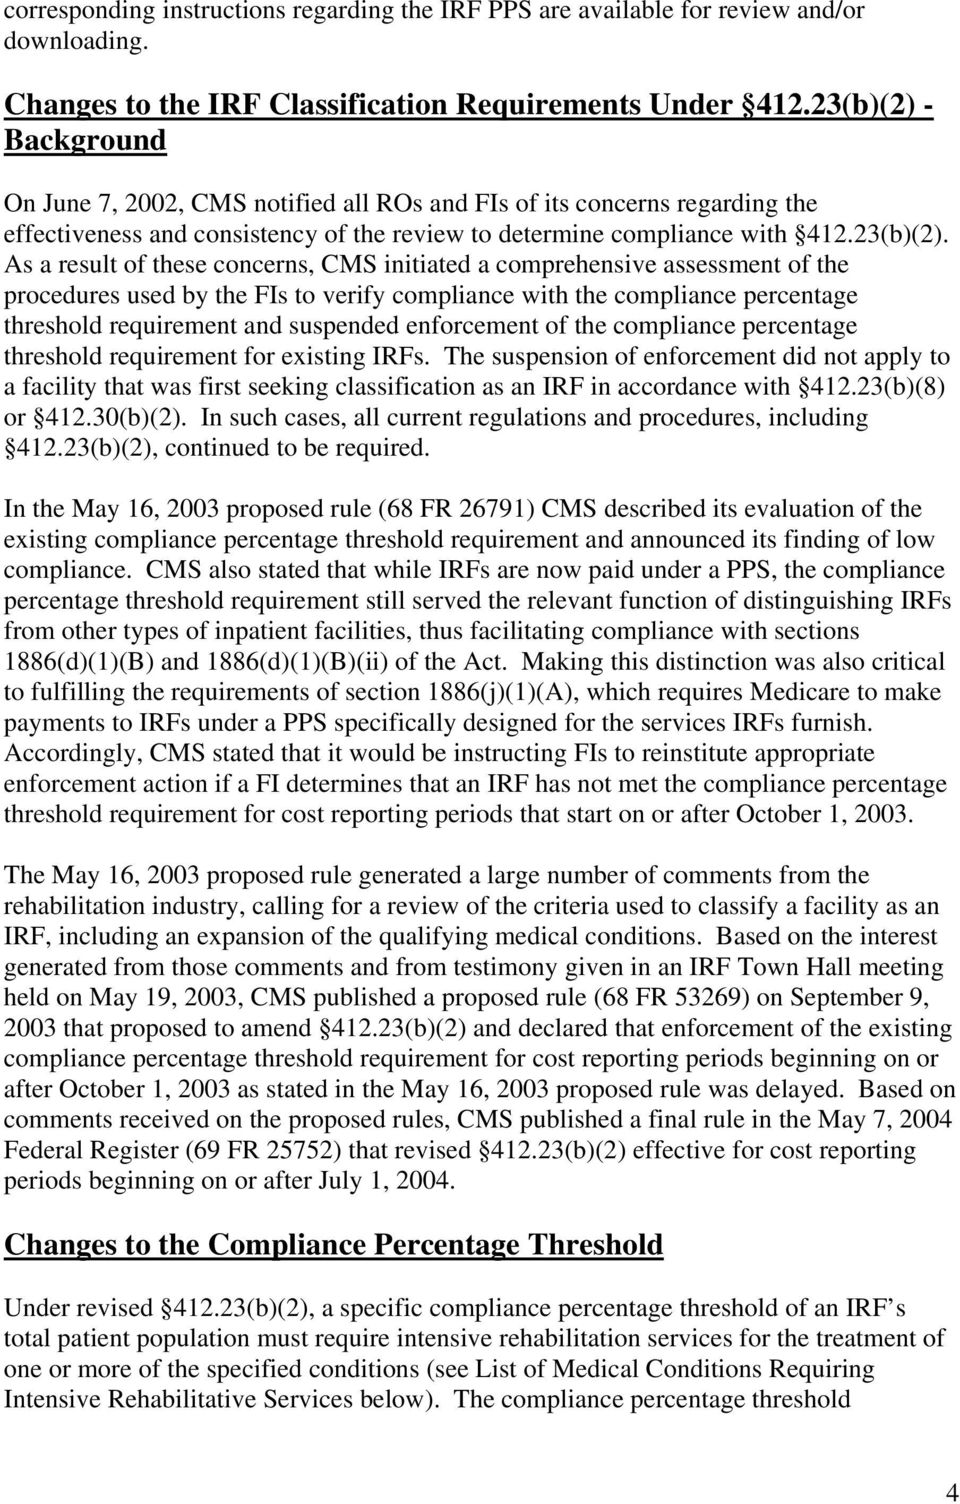 - Background On June 7, 2002, CMS notified all ROs and FIs of its concerns regarding the effectiveness and consistency of the review to determine compliance with 412.23(b)(2).